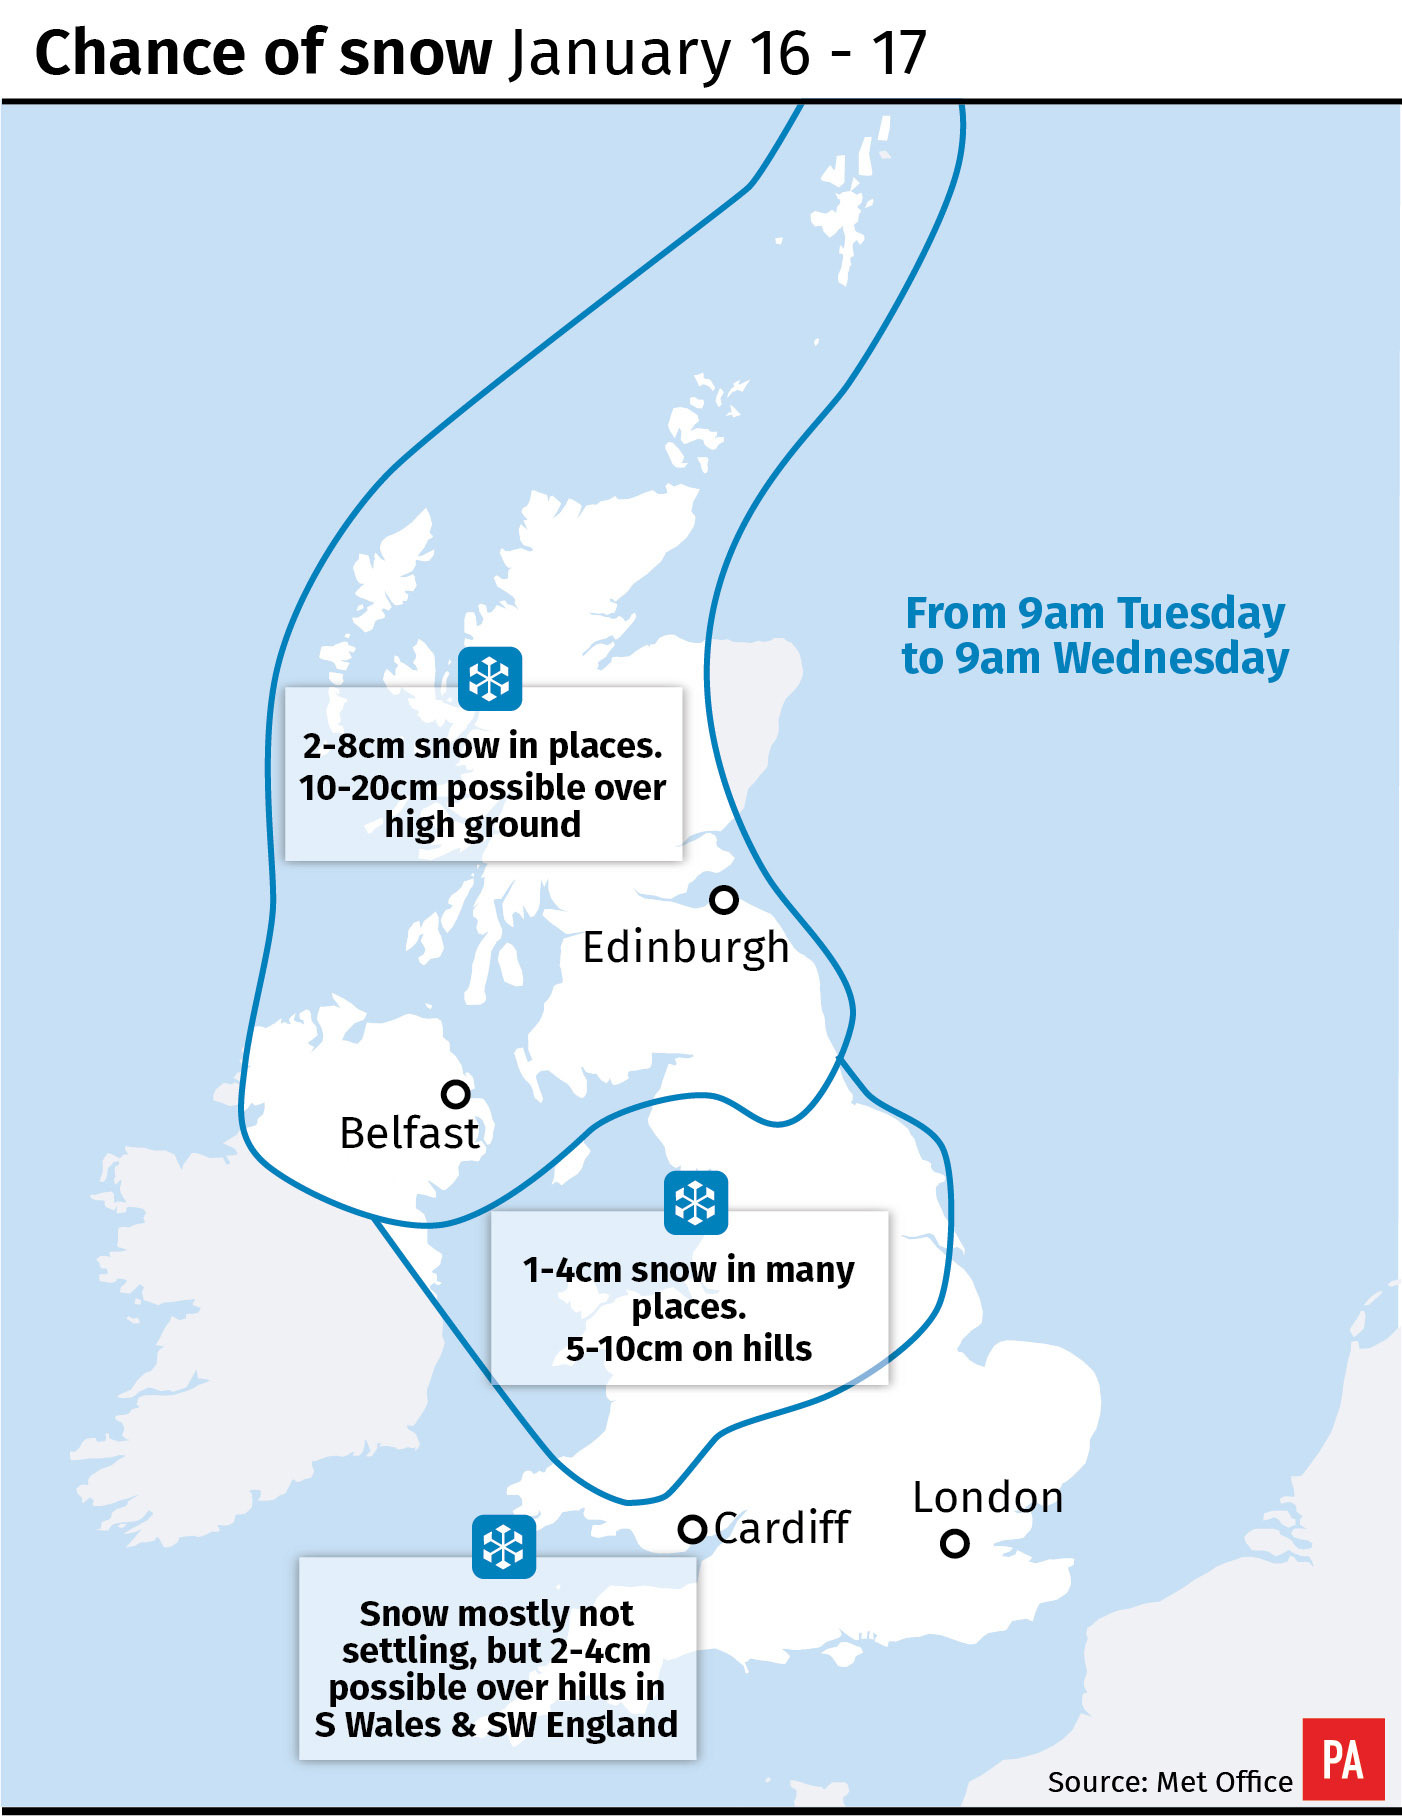 Travel disruption expected as weather warnings cover UK